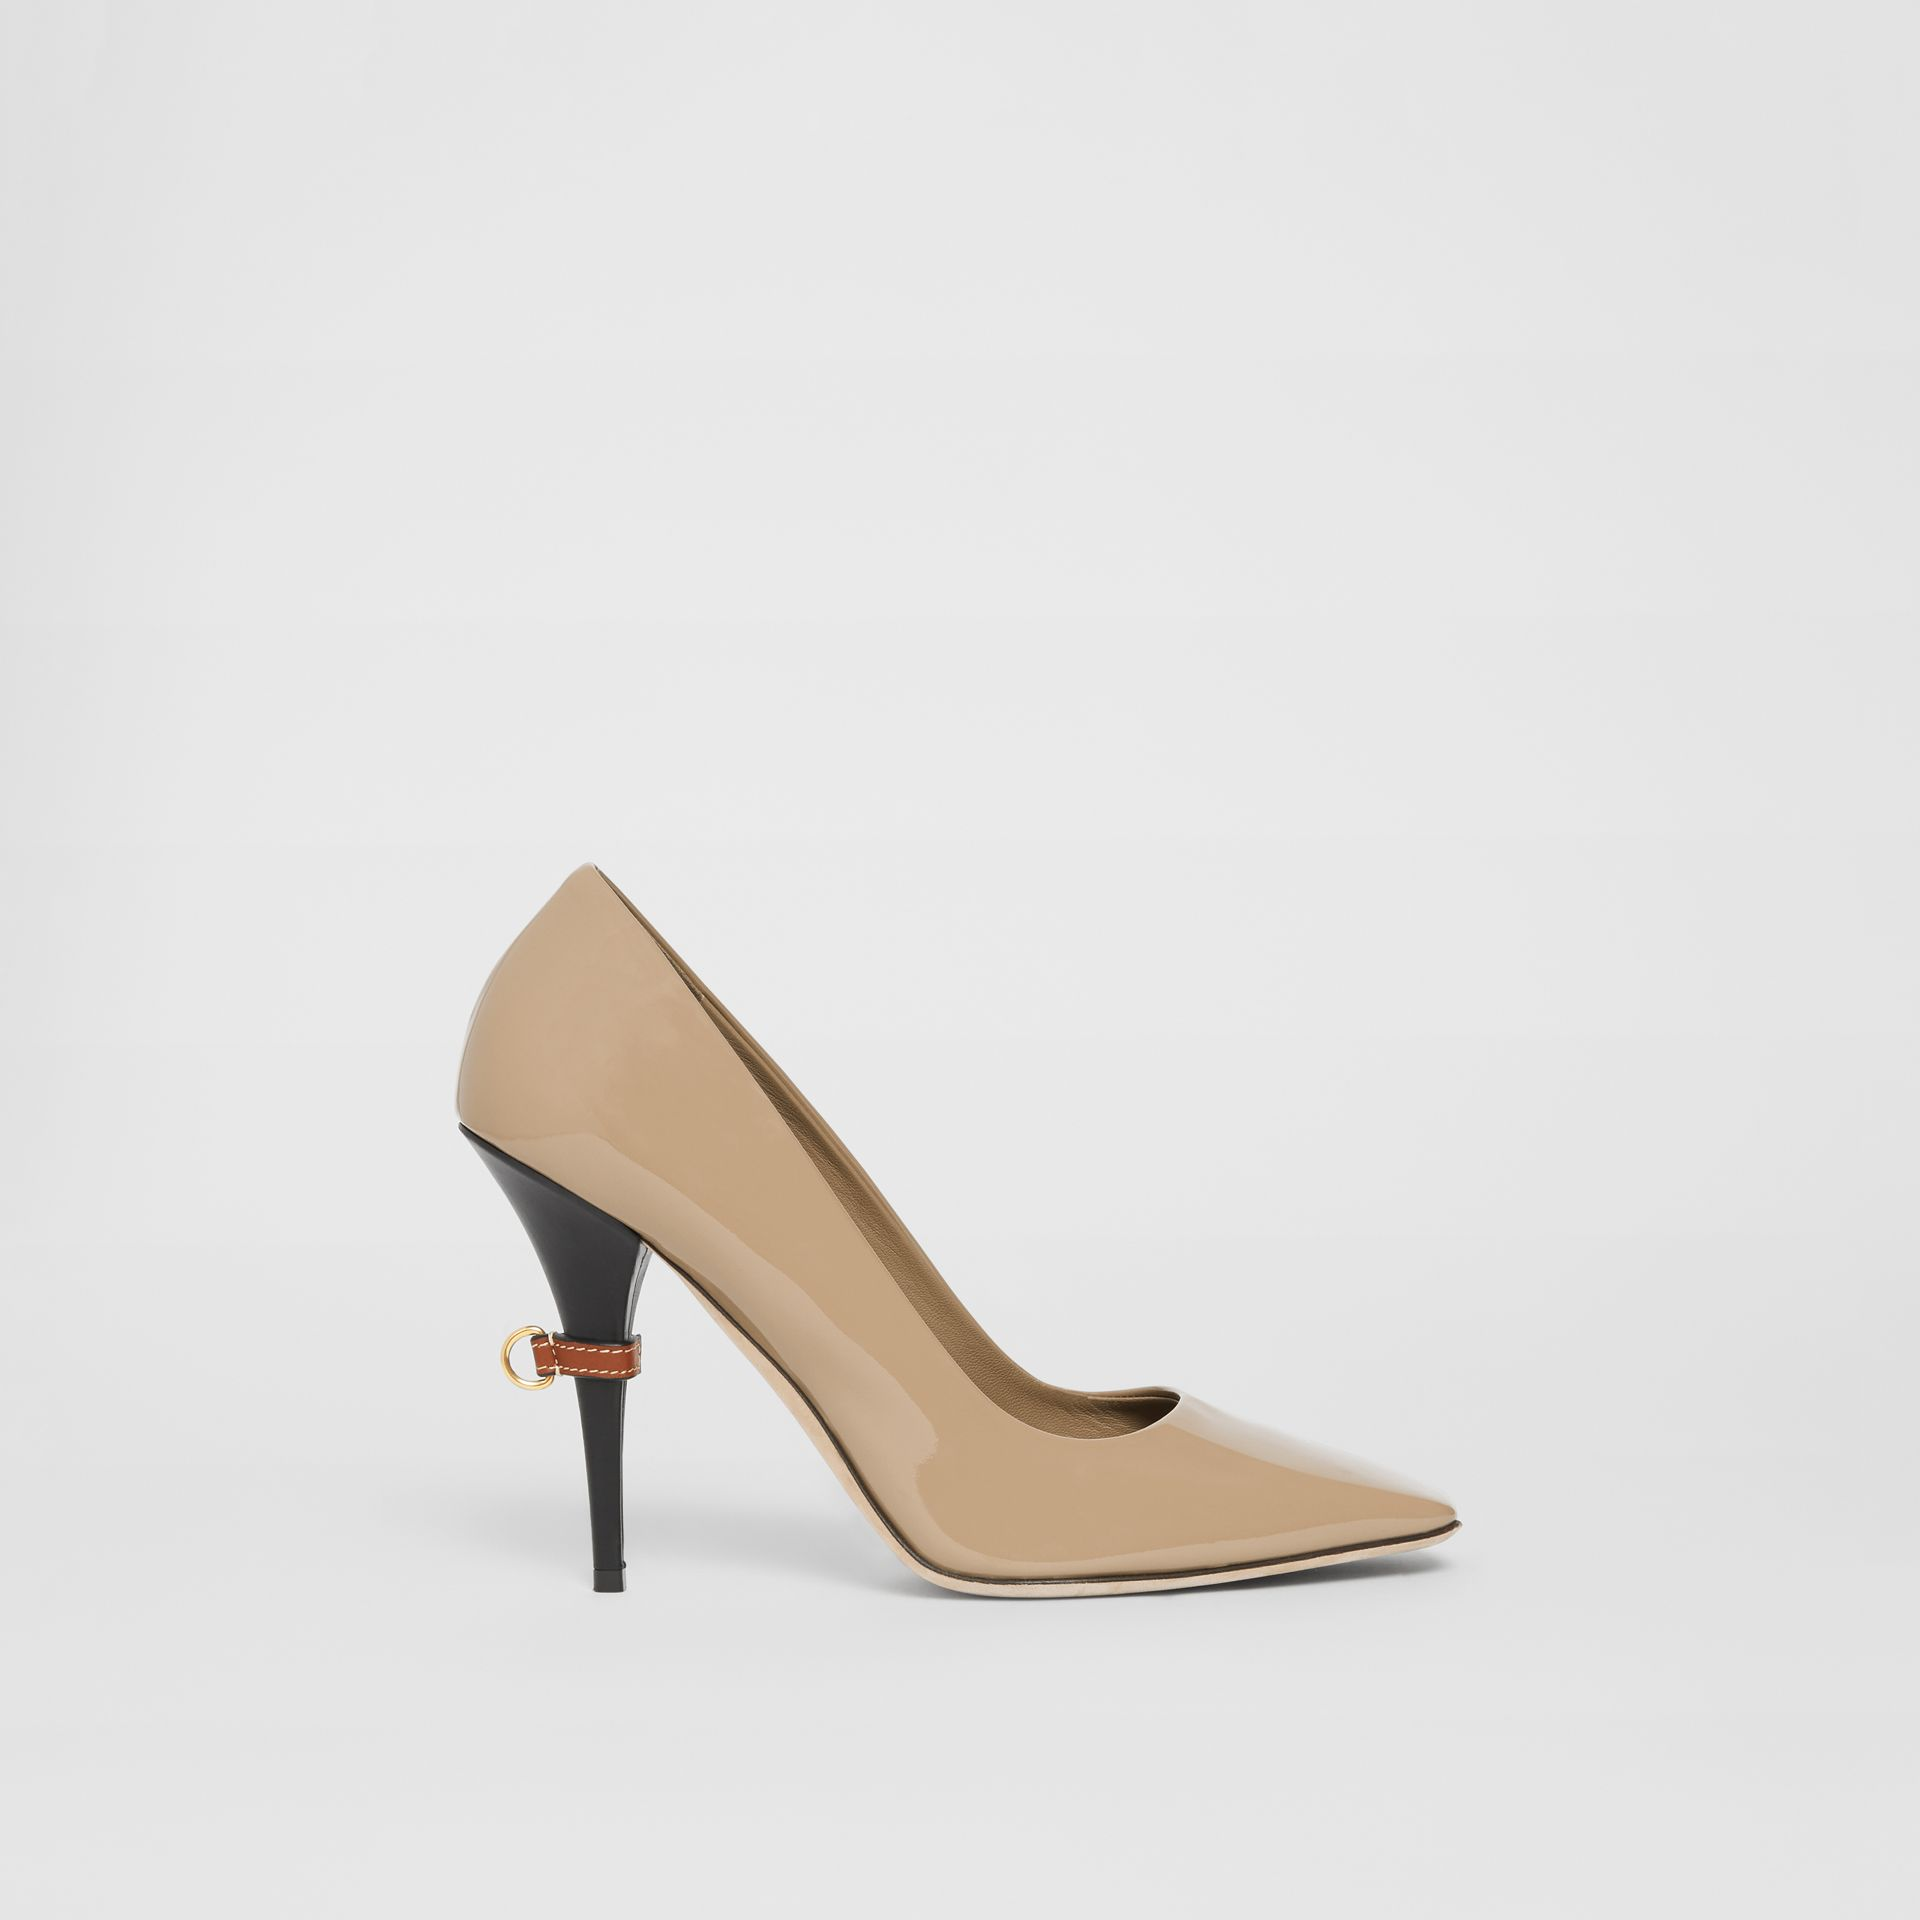 D-ring Detail Patent Leather Square-toe Pumps in Dark Honey - Women | Burberry United Kingdom - gallery image 5